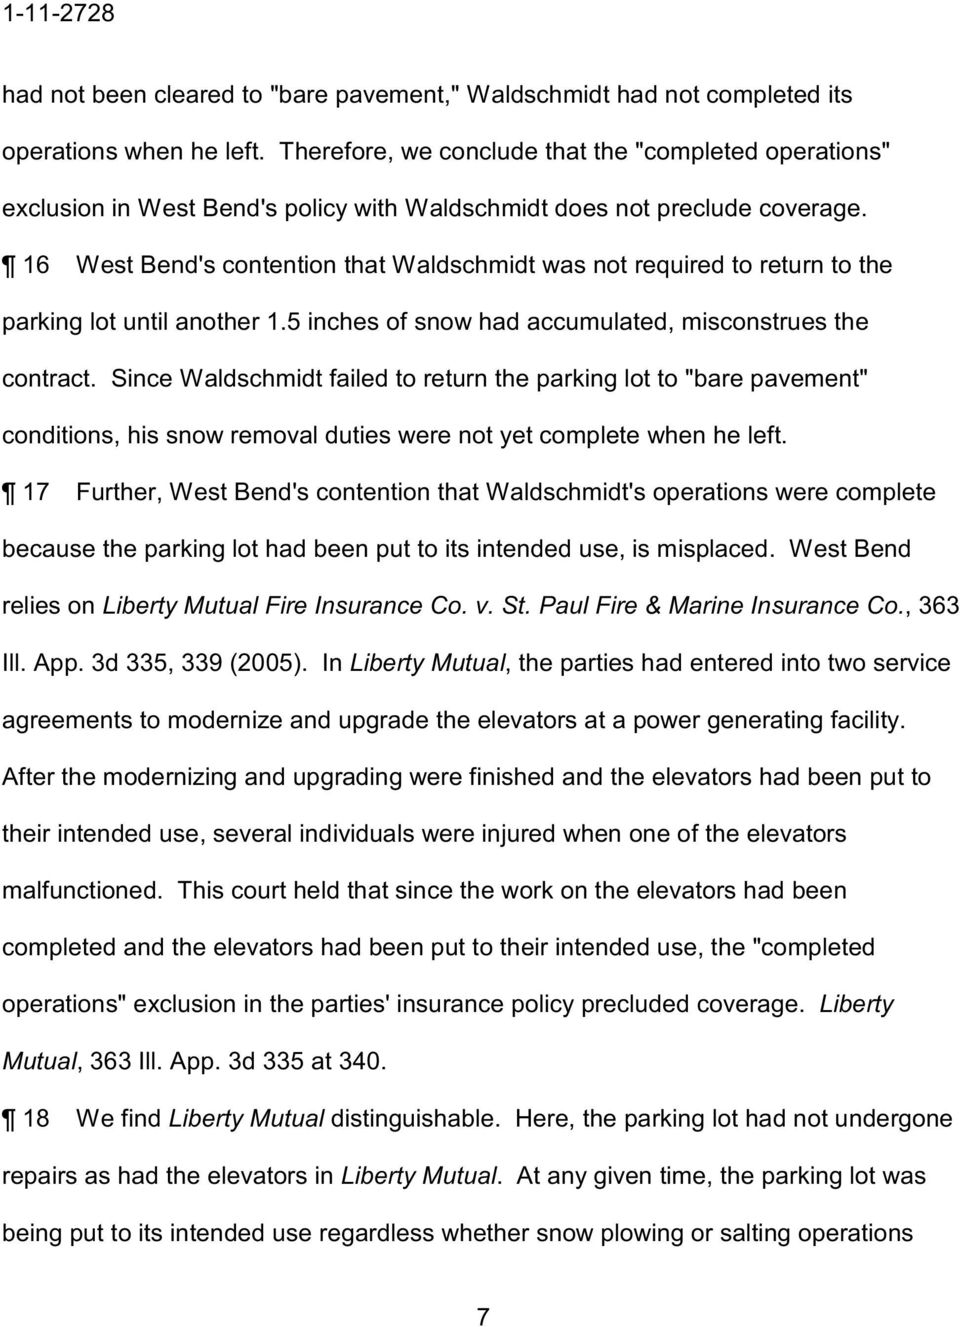 16 West Bend's contention that Waldschmidt was not required to return to the parking lot until another 1.5 inches of snow had accumulated, misconstrues the contract.